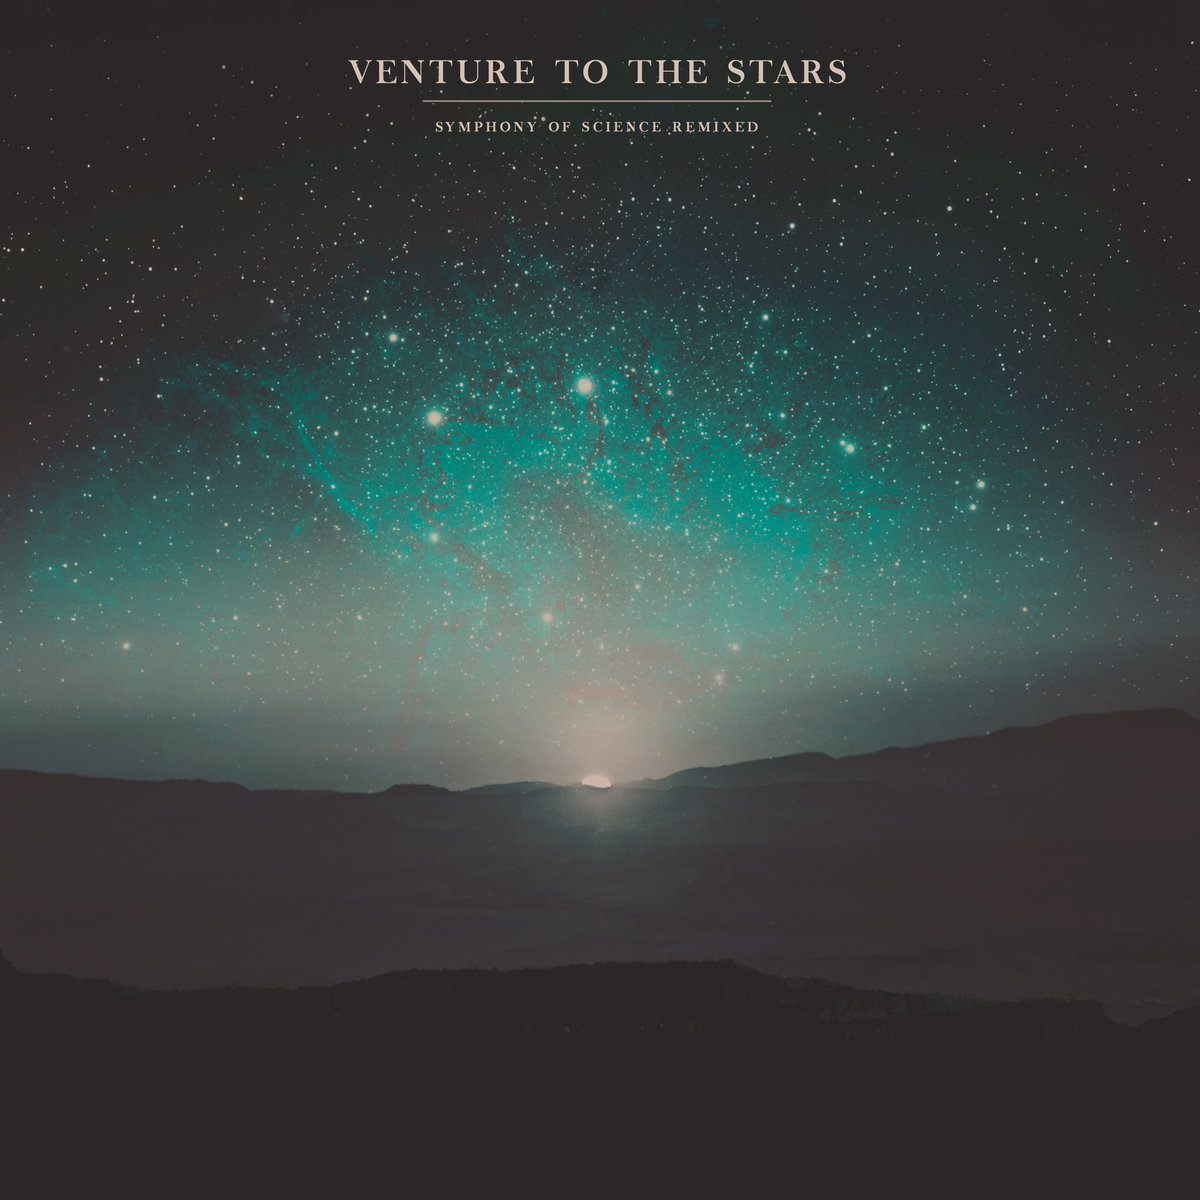 Venture to the Stars - Symphony of Science remixes by electronic artists